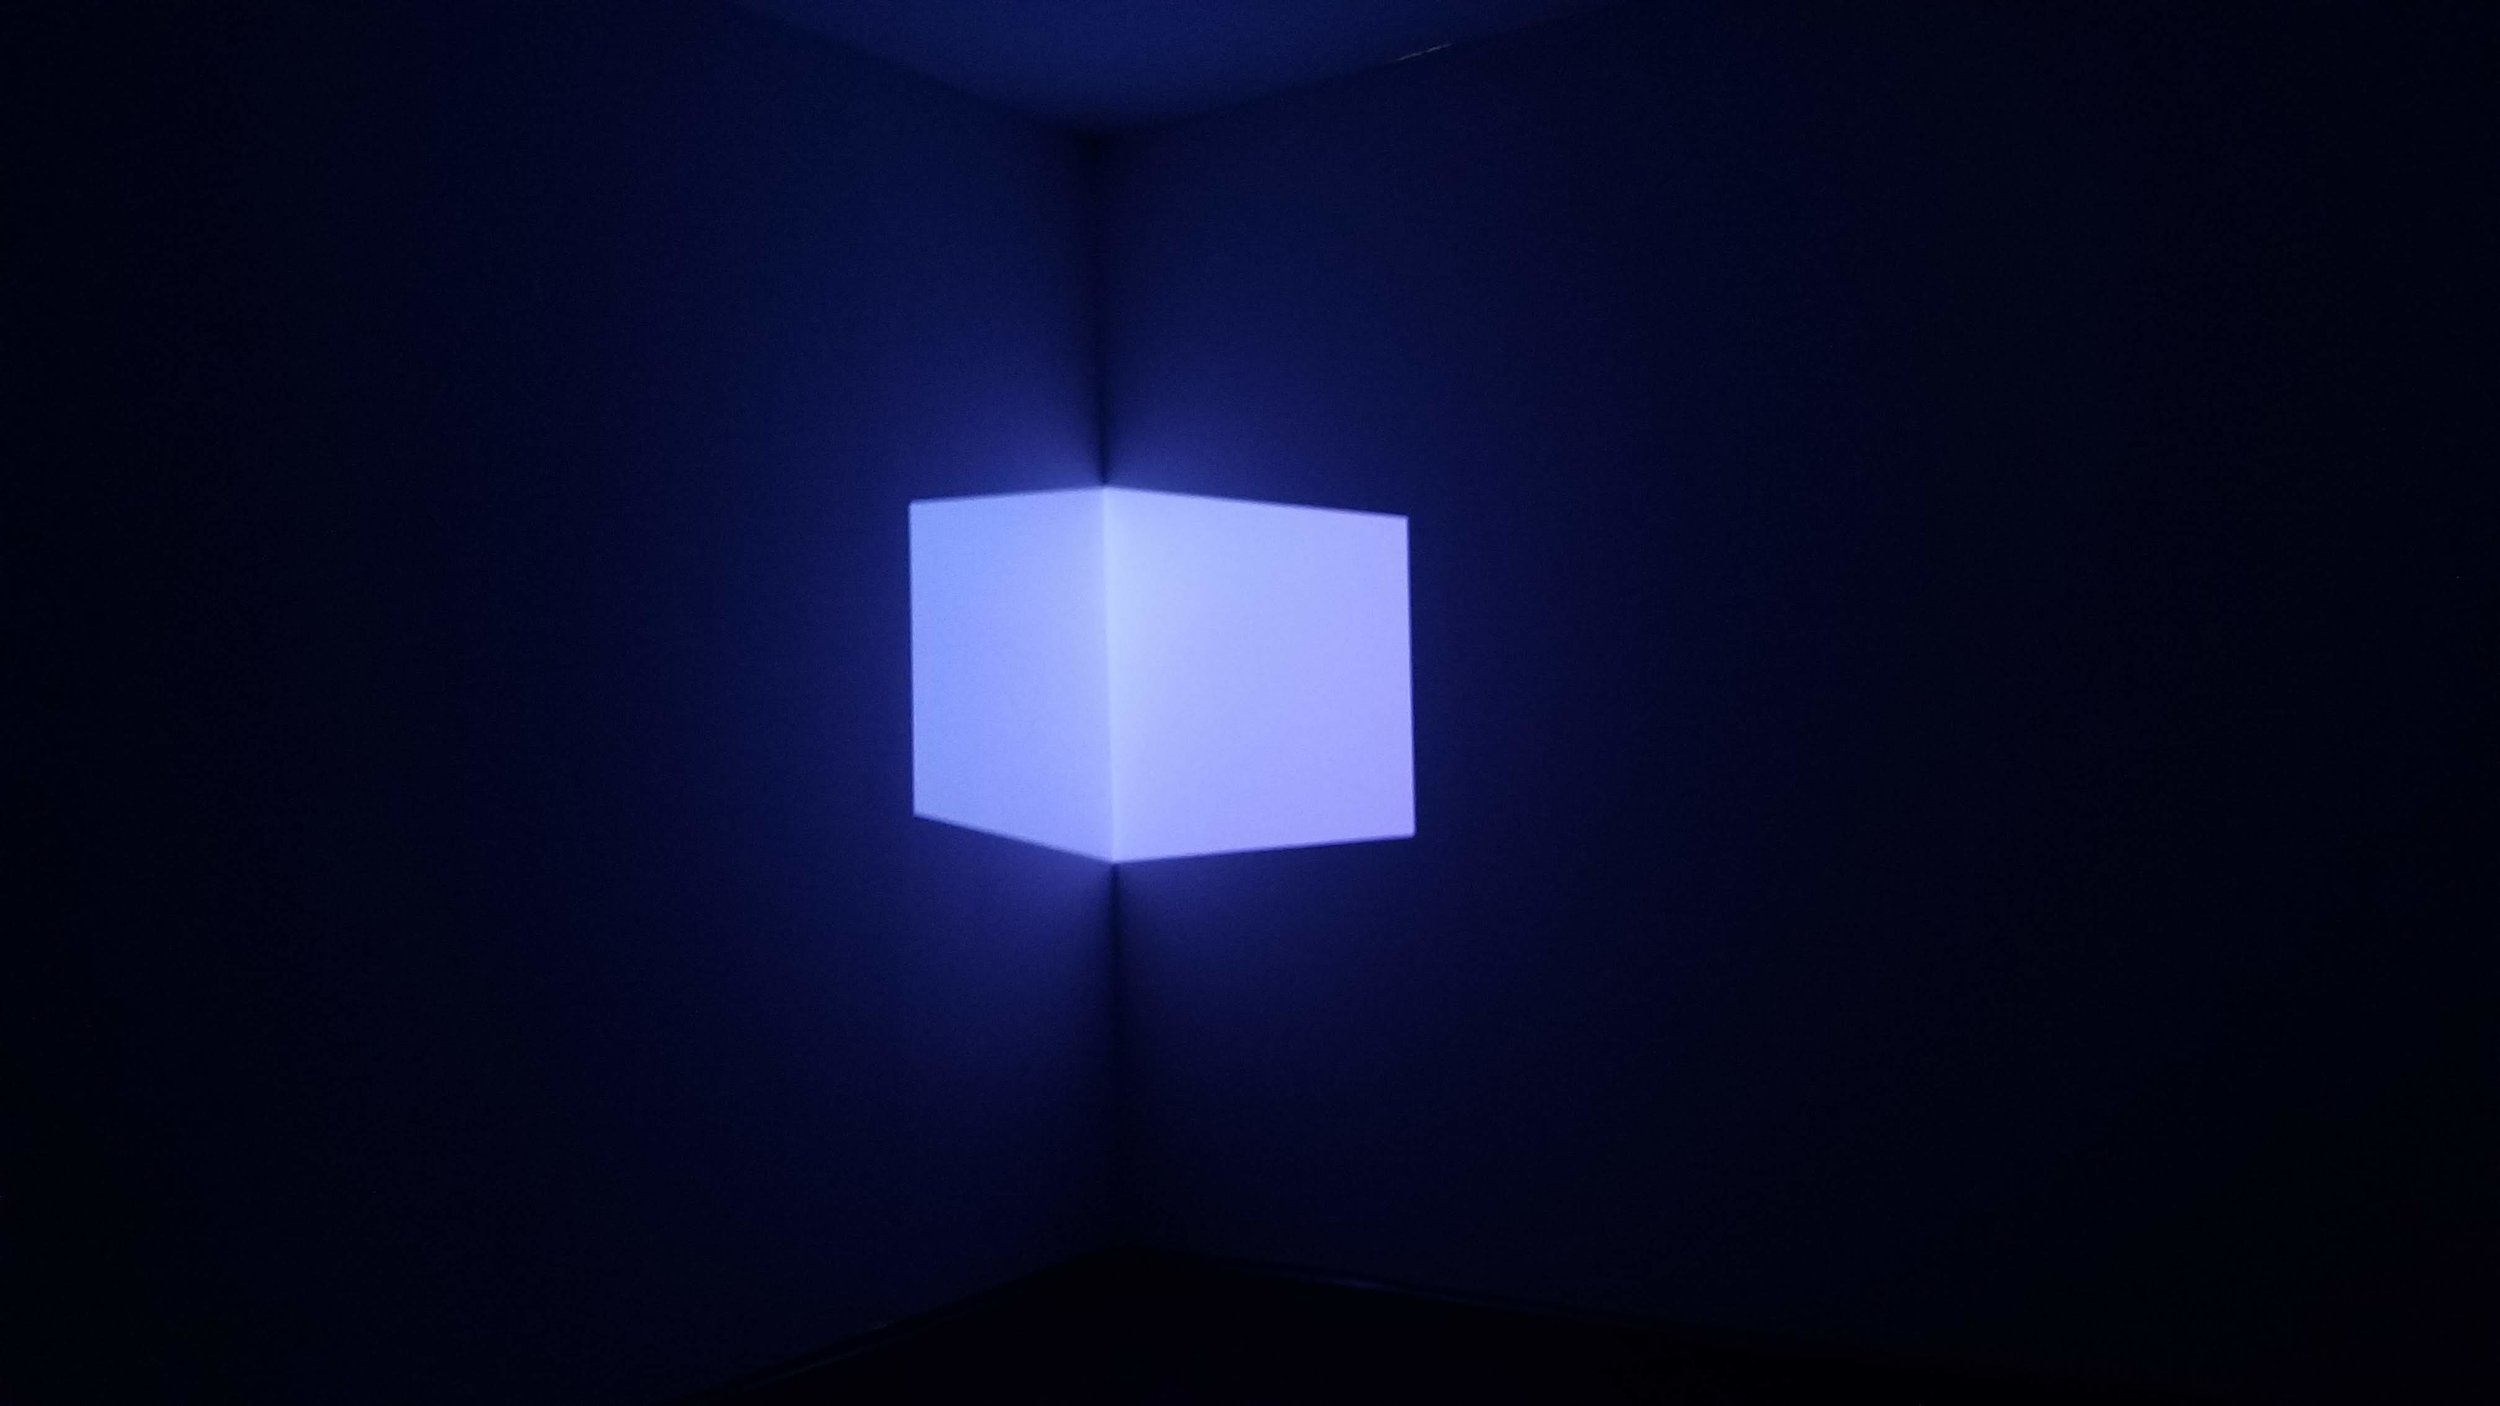 James Turrell, NYEHAUS